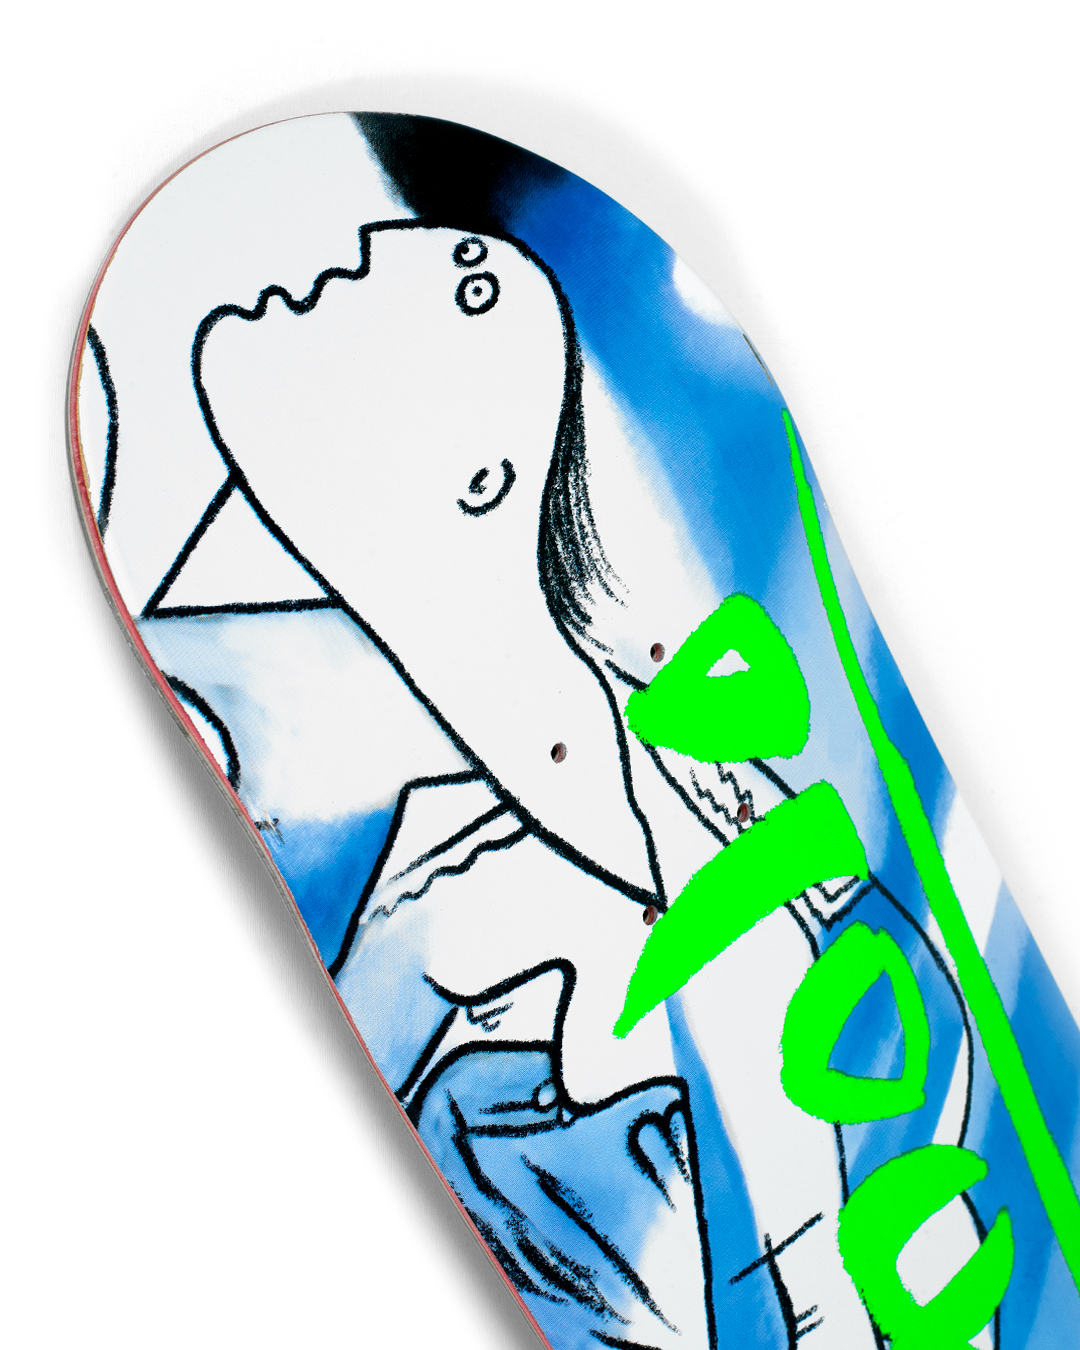 Darkstar Skateboards Summer 2019 Manolo 1